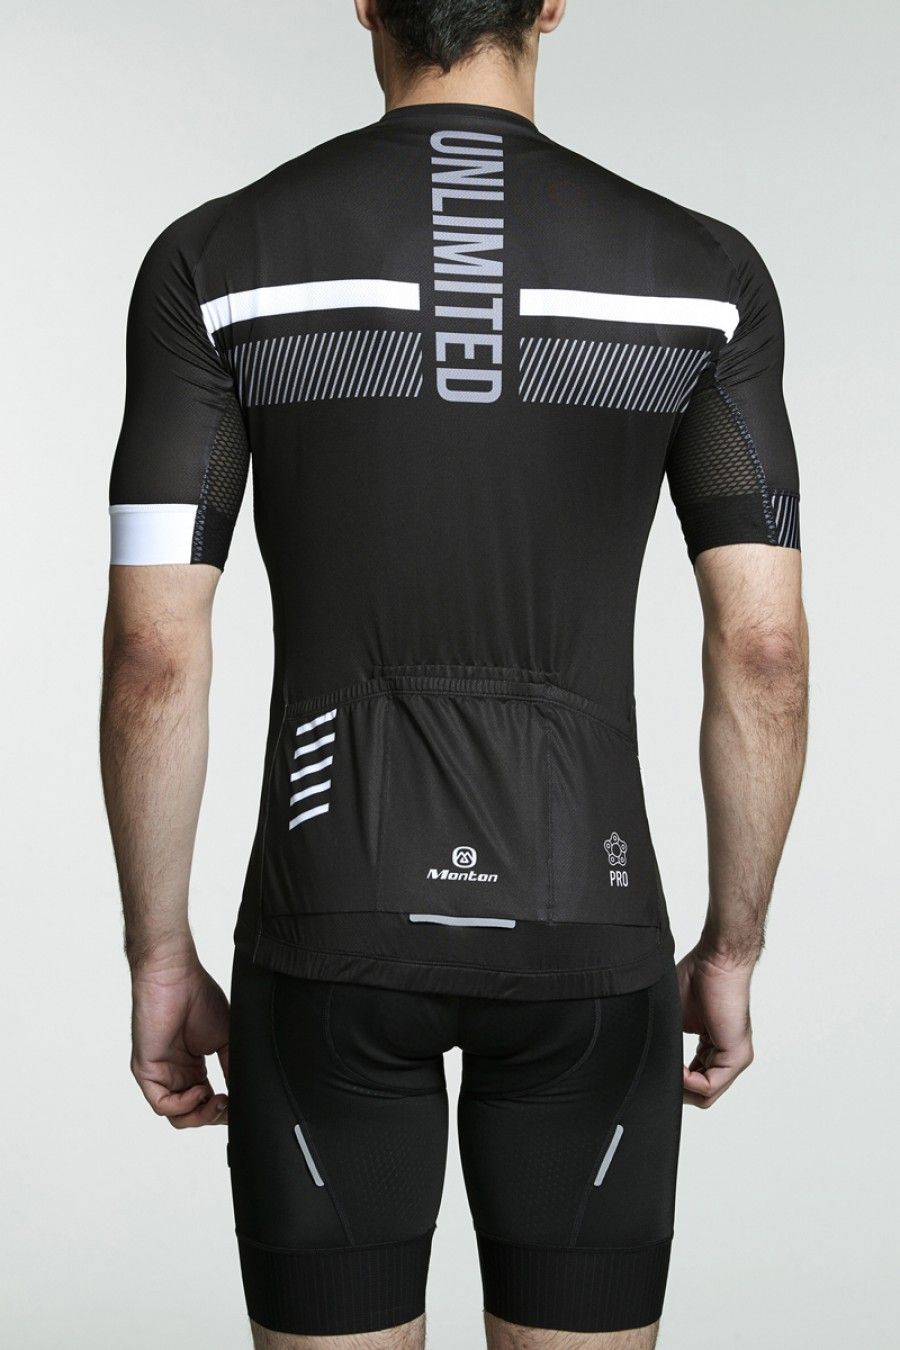 Men/'s Bike Jerseys Cycling Short Sleeve Bicycle Man Outdoor Sports Racing Riding